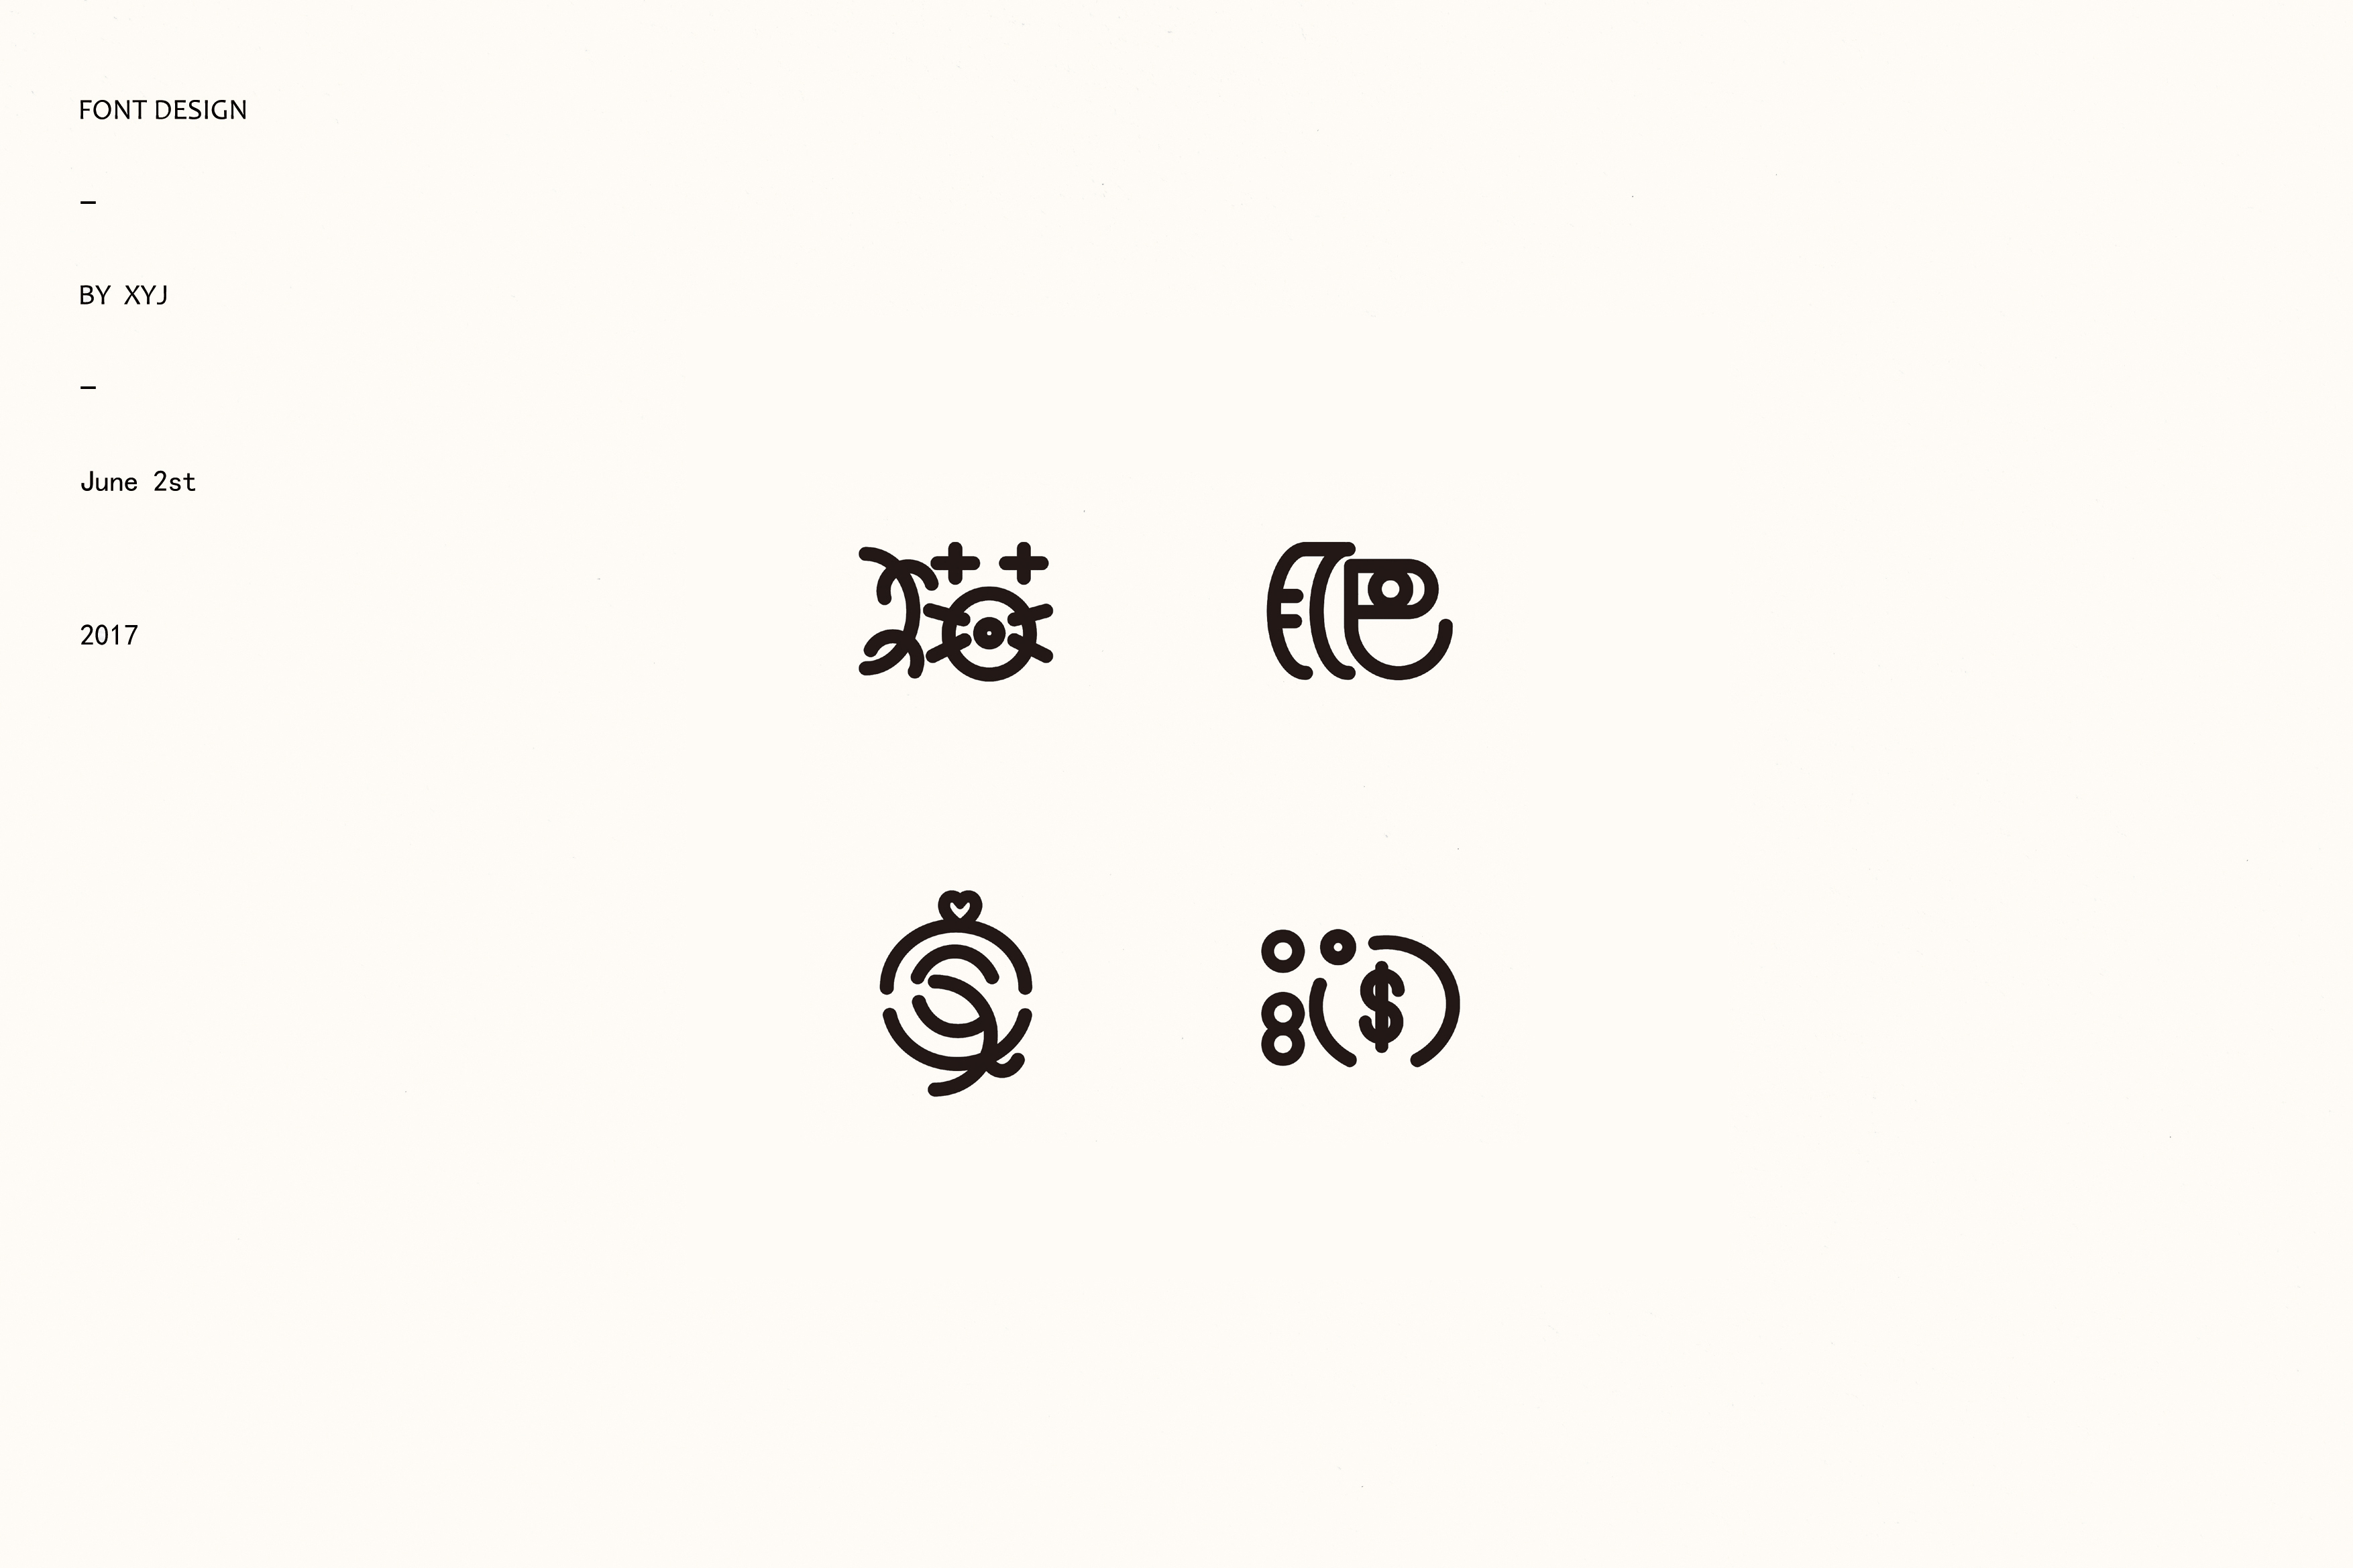 chinesefontdesign.com 2017 07 11 11 30 58 273511 13P Chinese font style design march